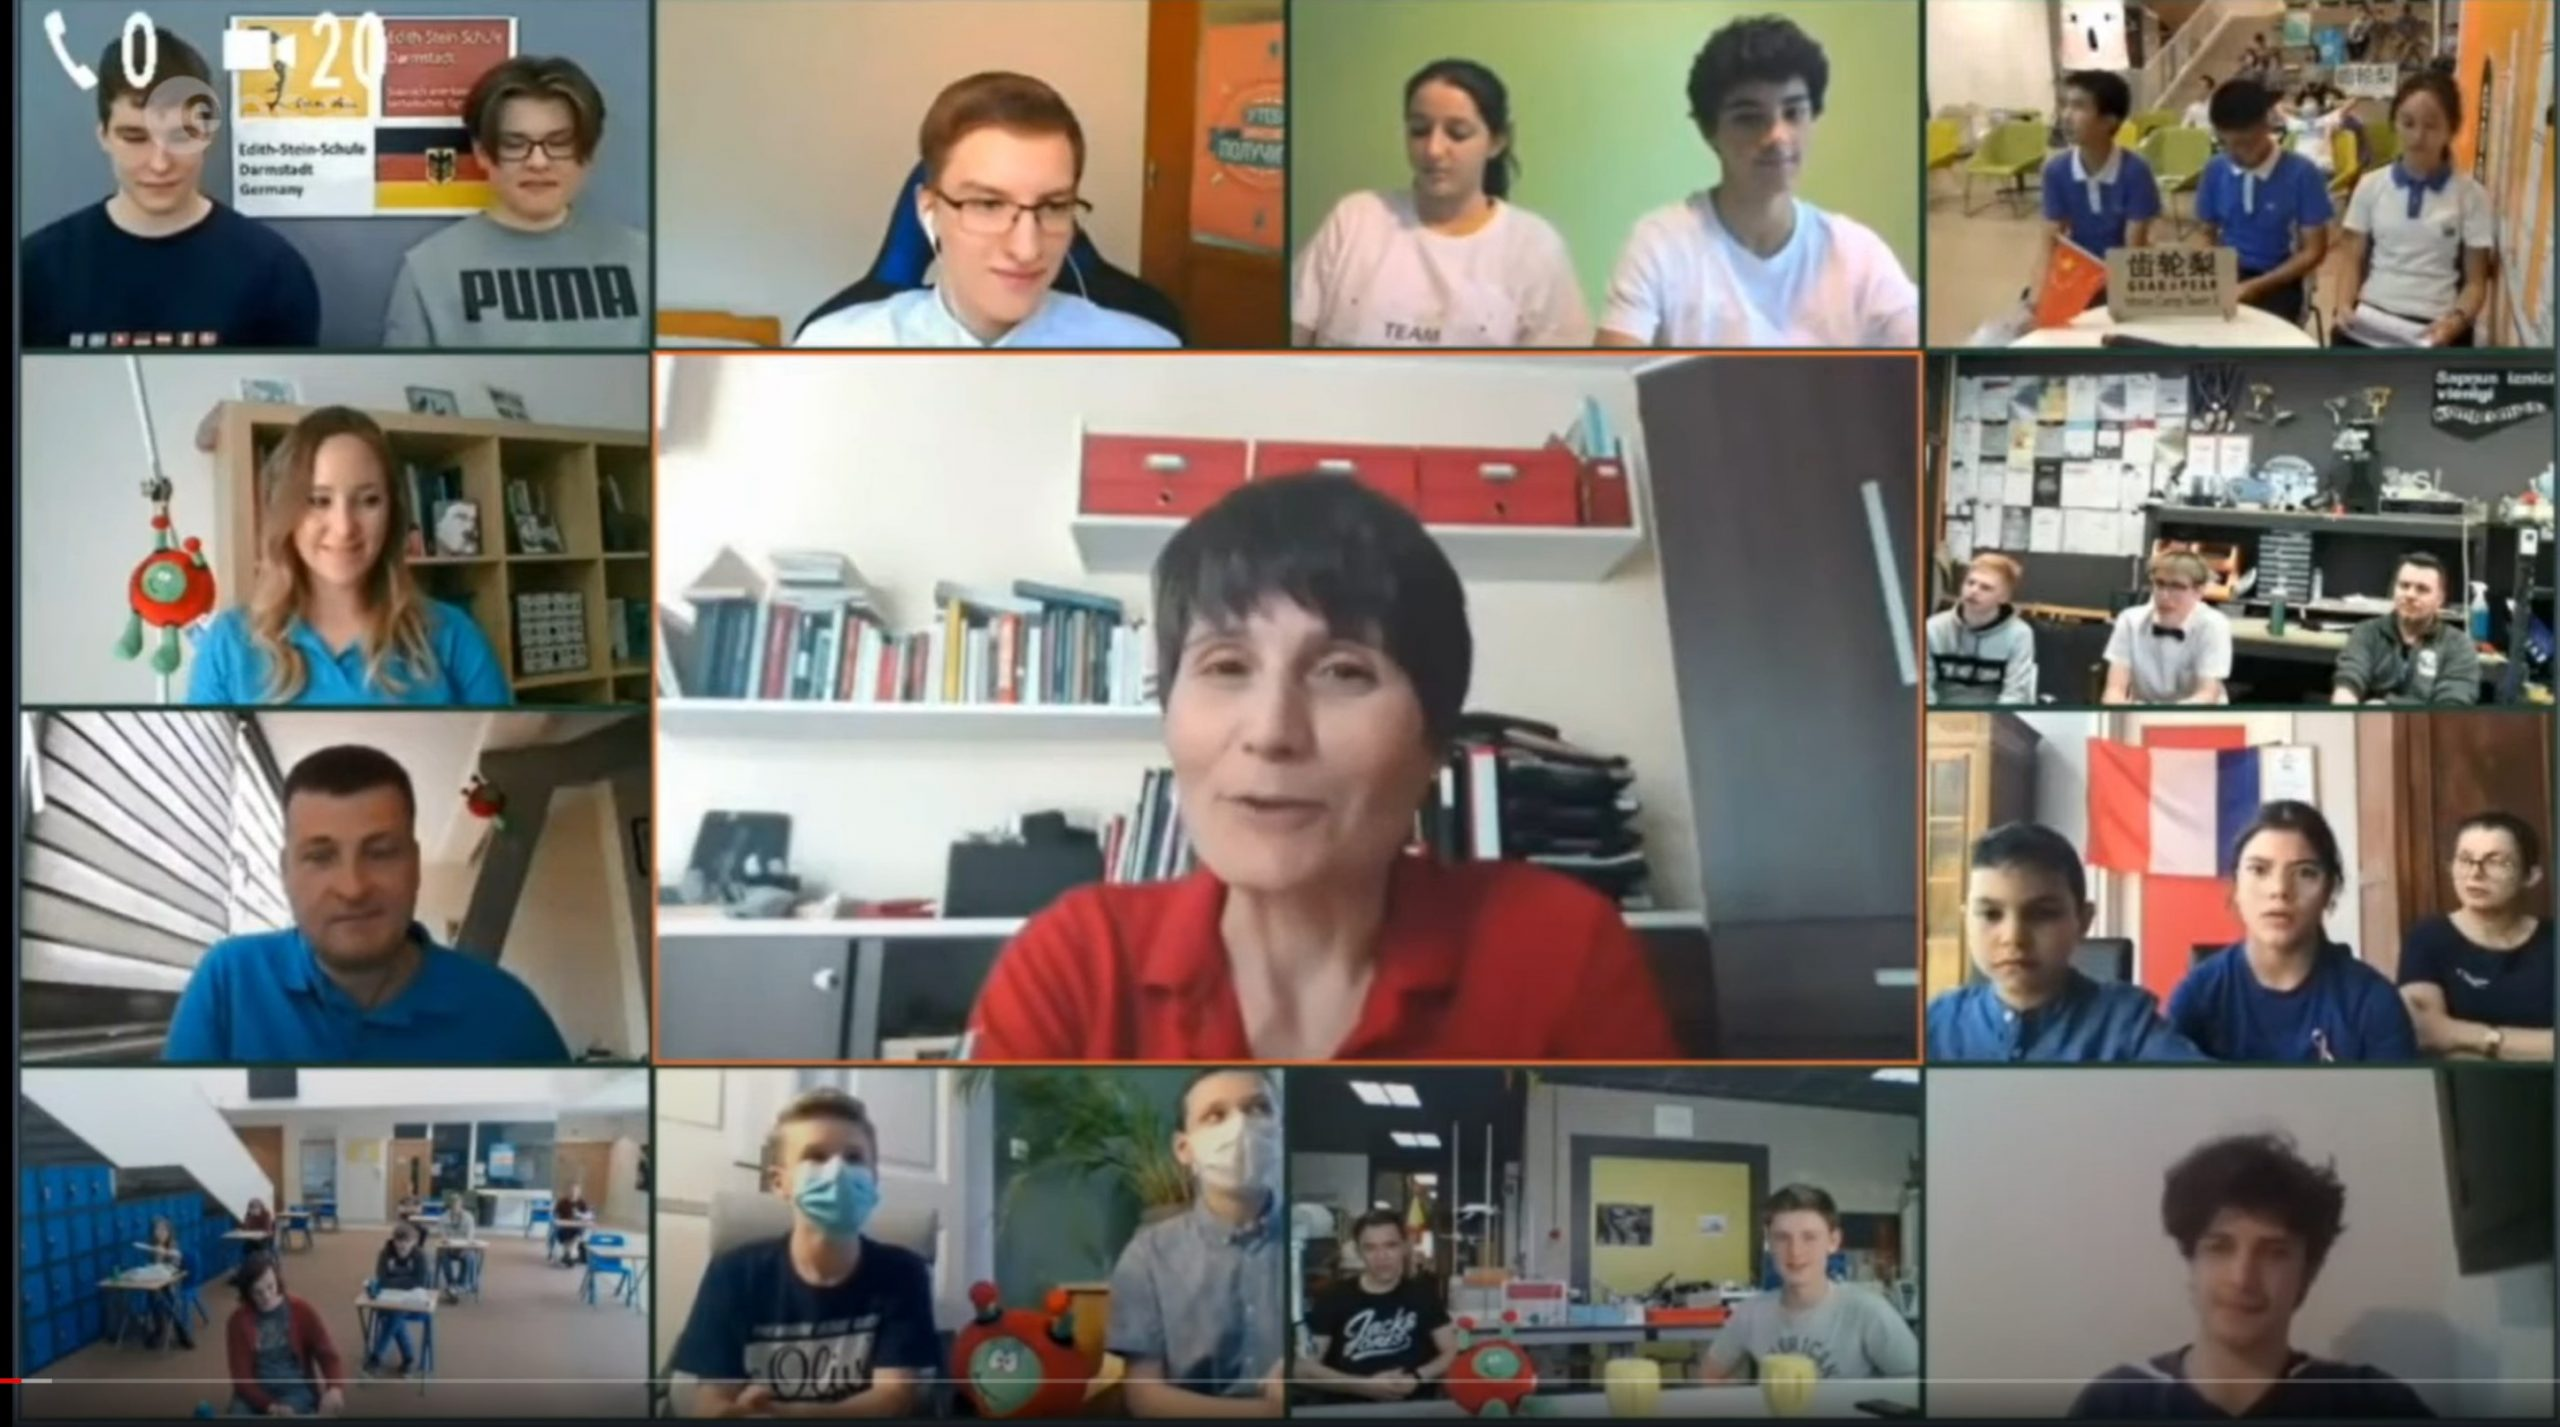 2019/2020 Moon Camp Winners Webinar With ESA Astronauts Samantha Cristoforetti and Luca Parmitano